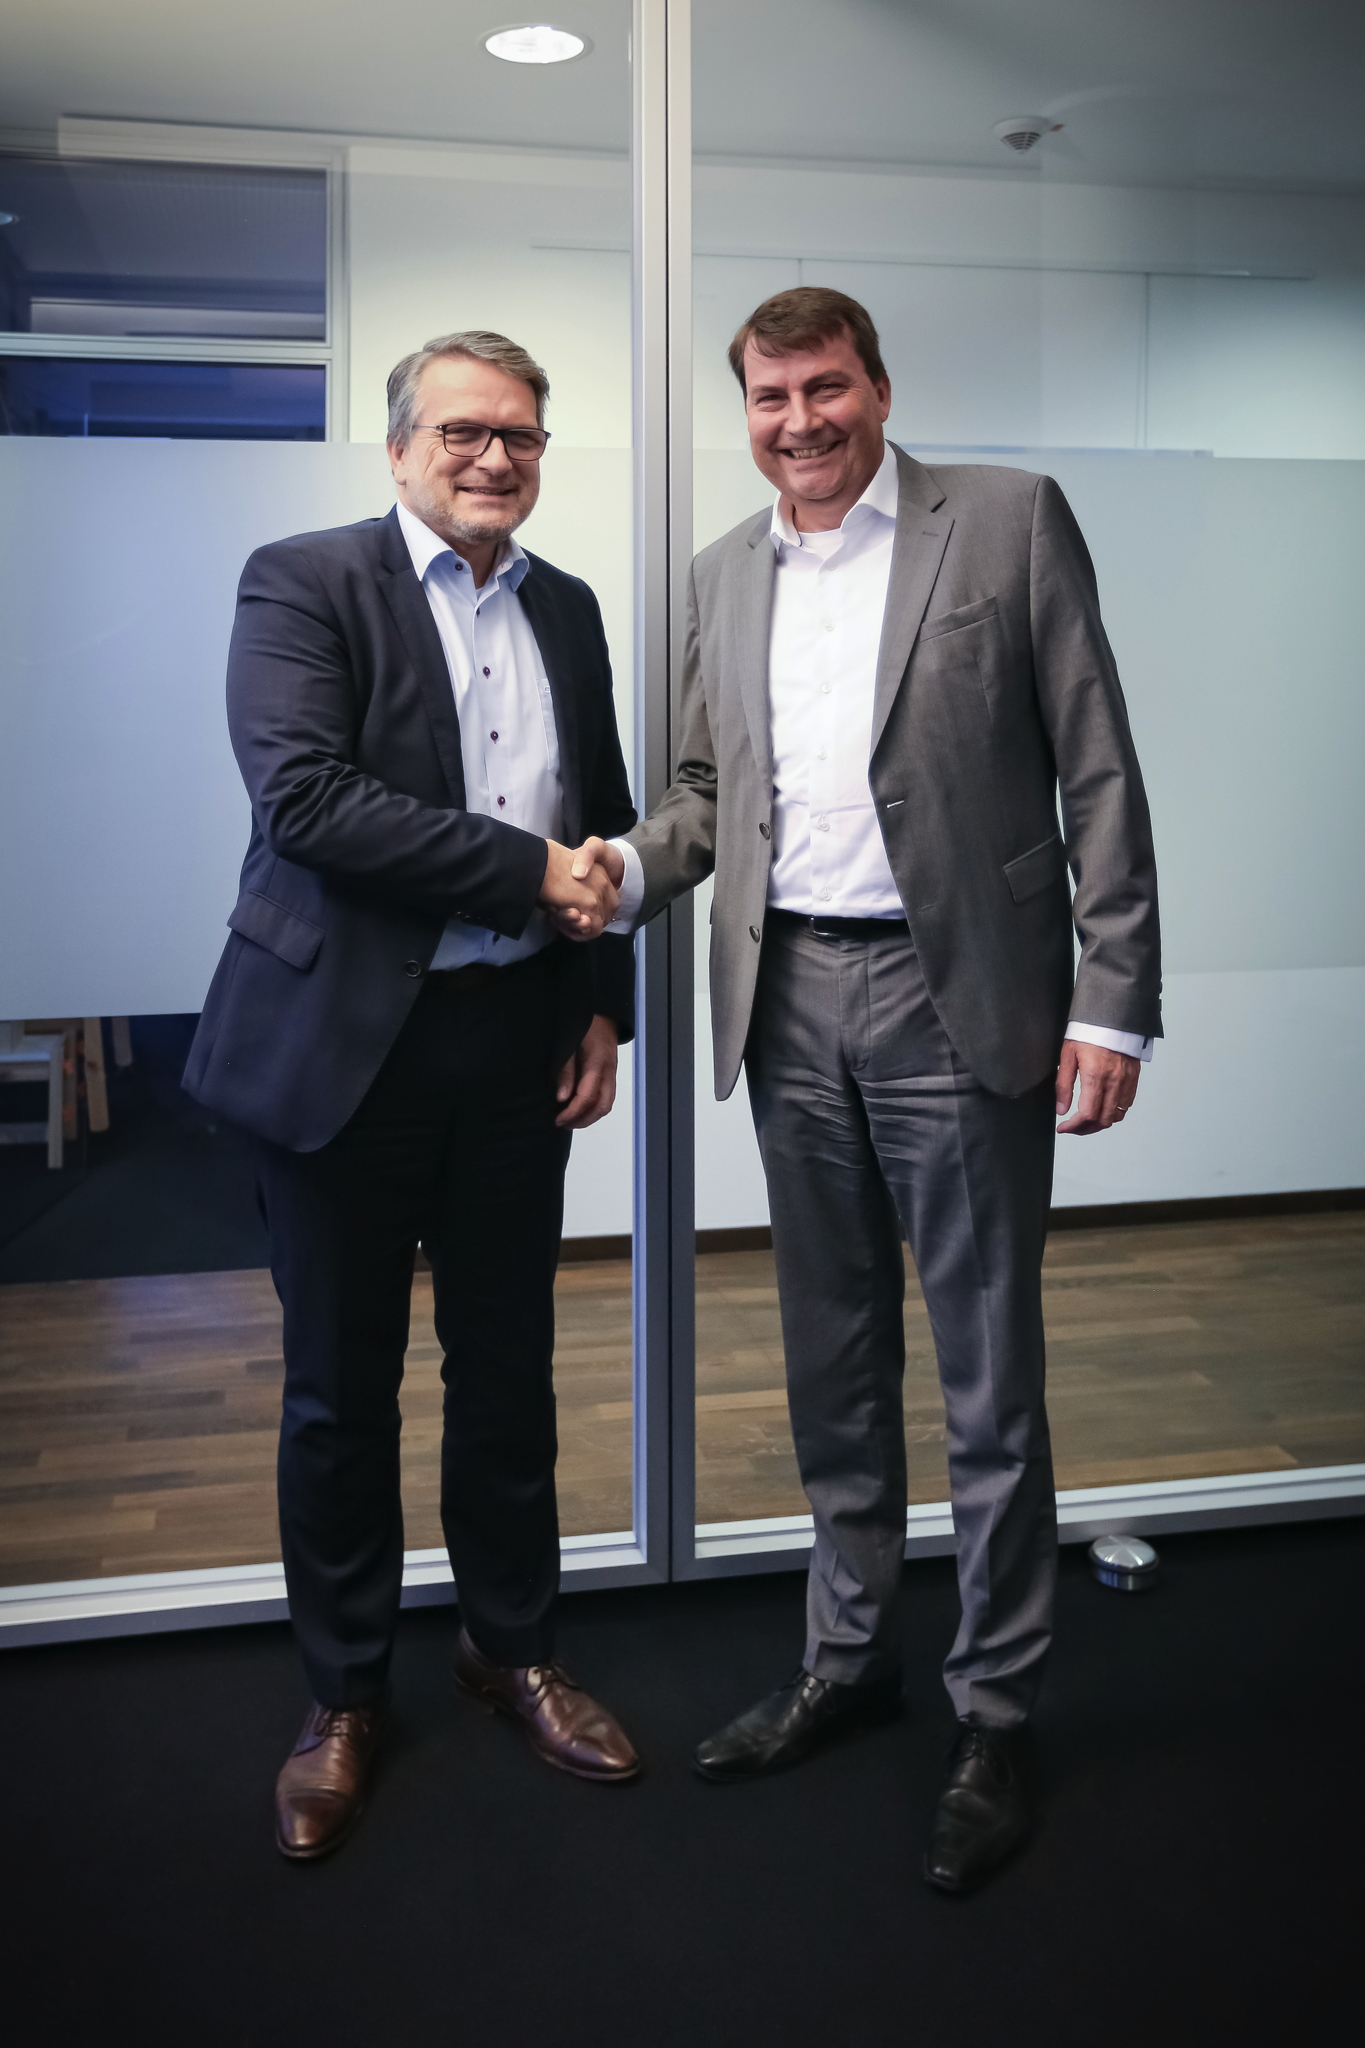 V. l. n. r.: Thomas Wildt (CEO Hennecke Group), Dr. Christof Bönsch (CEO Frimo Group) (Quelle: obs/Hennecke Group Frimo Group)